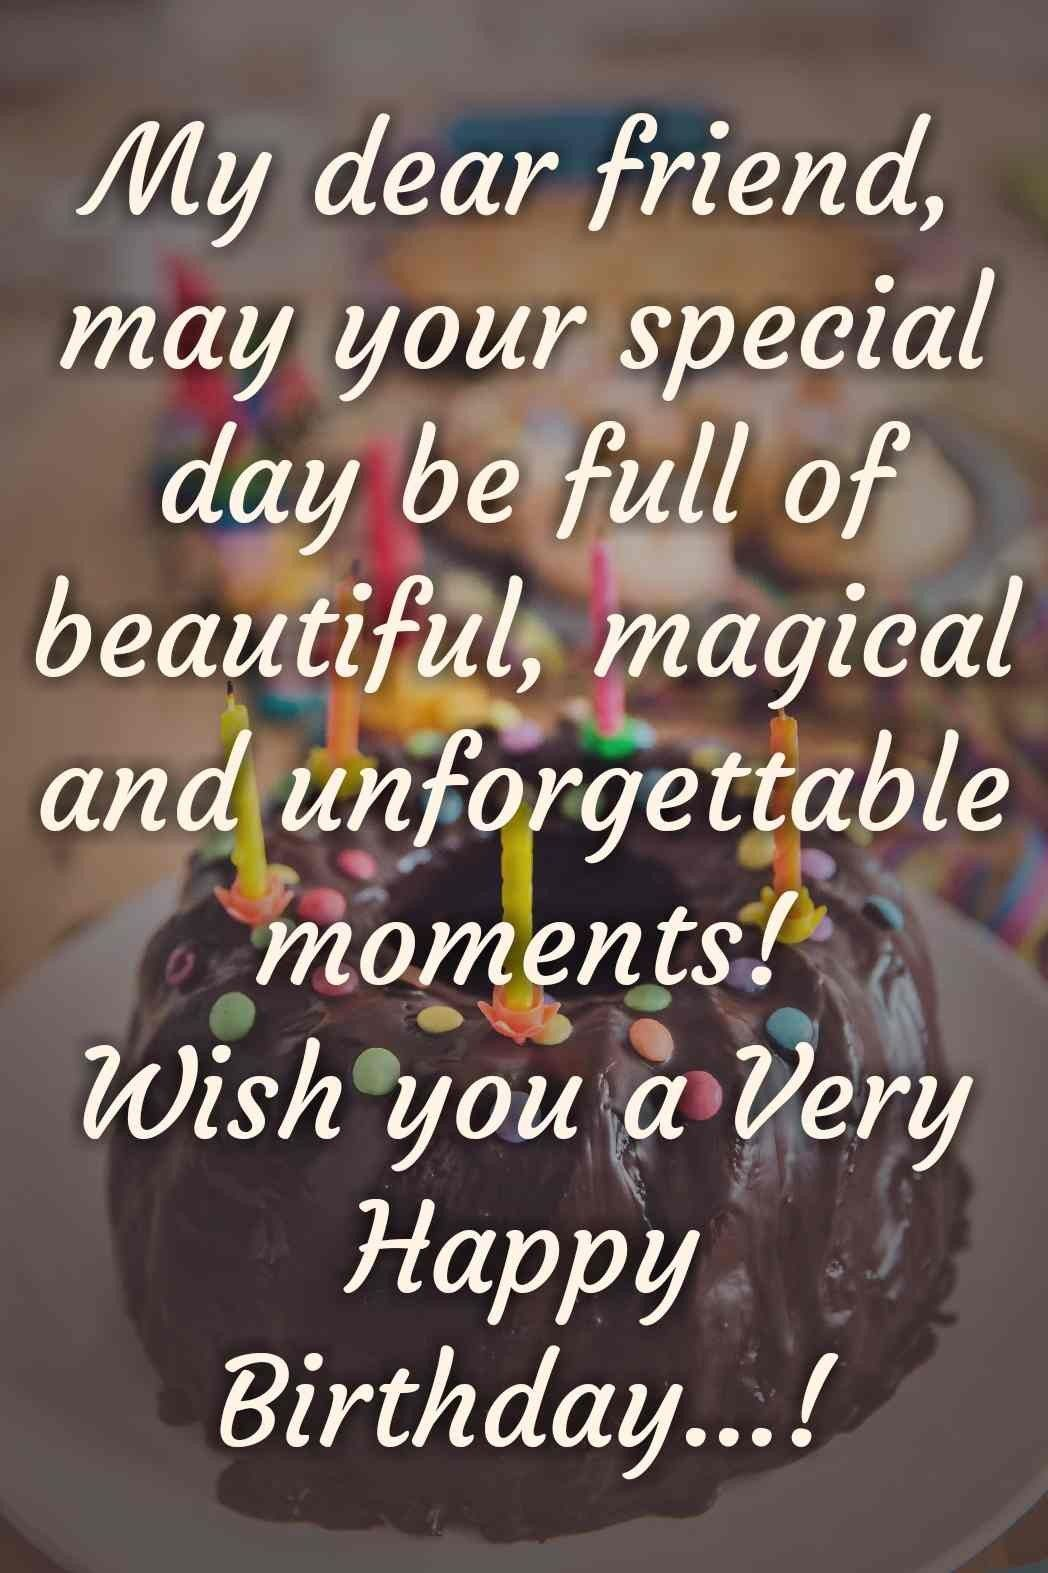 Happy Birthday Wishes For Friend In 2021 Advance Happy Birthday Happy Birthday Wishes Birthday Wishes For Friend